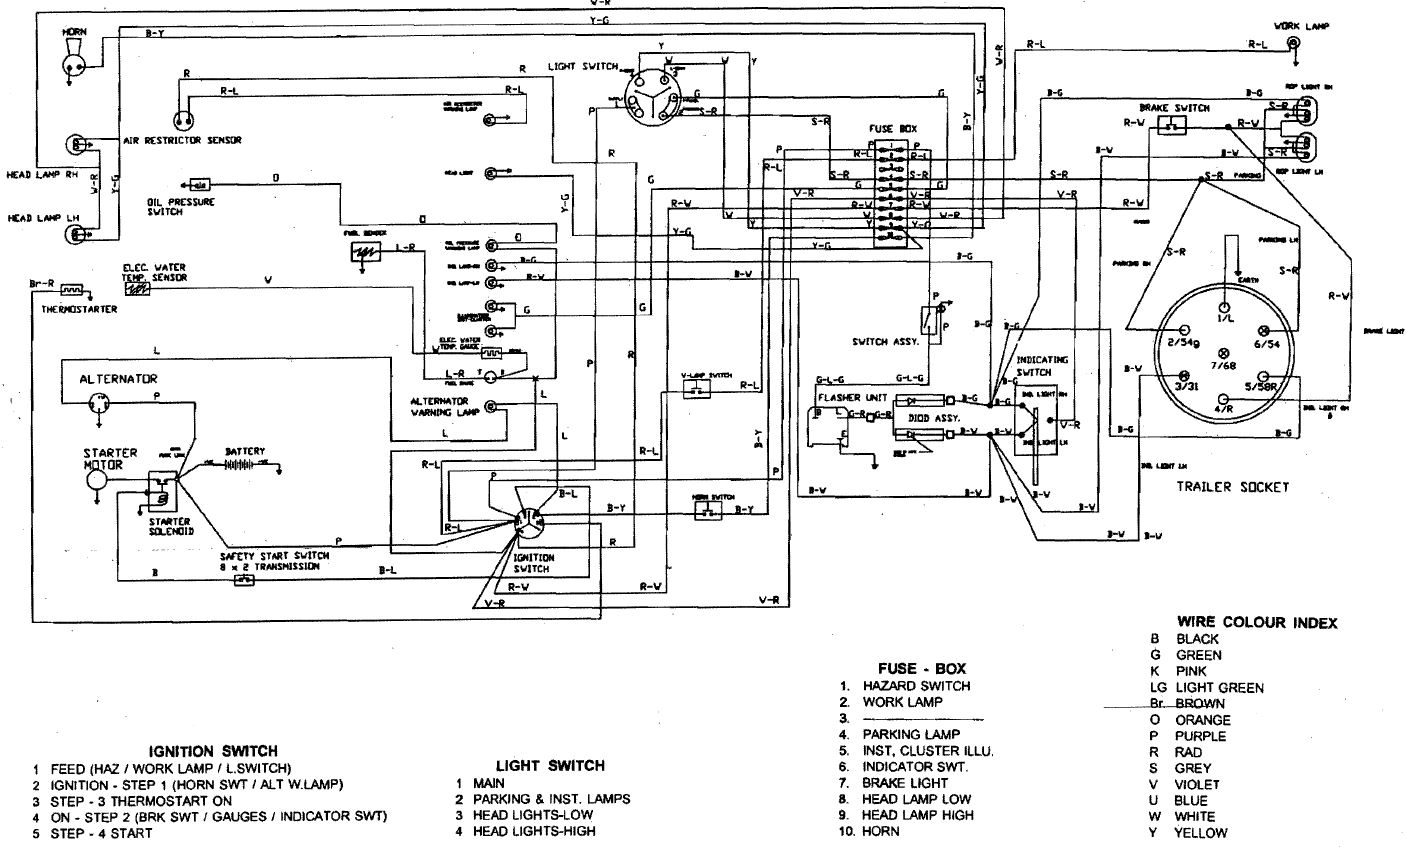 20158463319_b82d524c3d_o ignition switch wiring diagram small engine ignition switch wiring diagram at soozxer.org